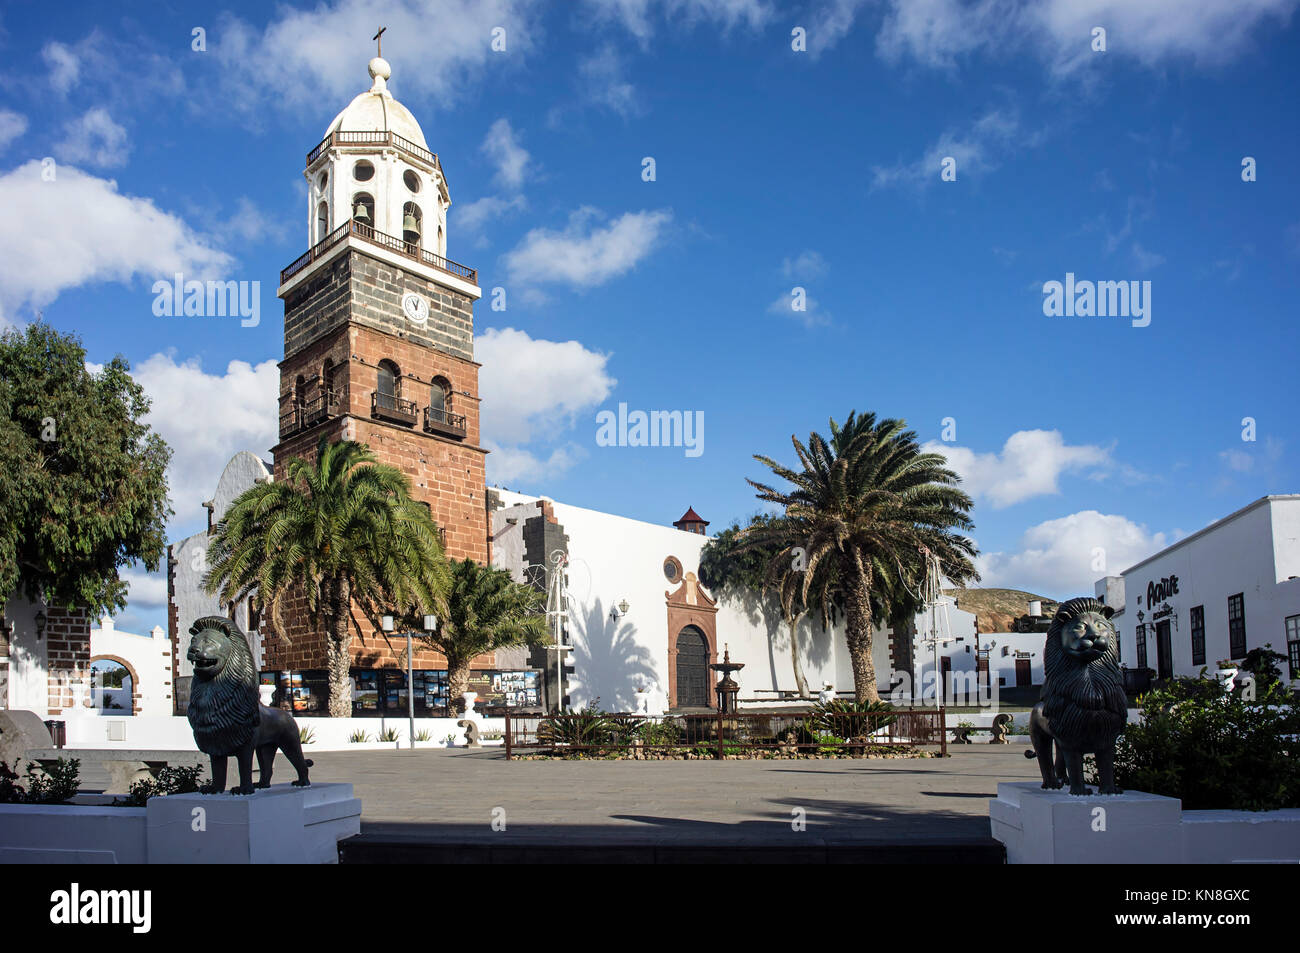 Nuestra Senora de Guadalupe church,   Teguise,   Lanzarote, Canary Islands, Spain - Stock Image